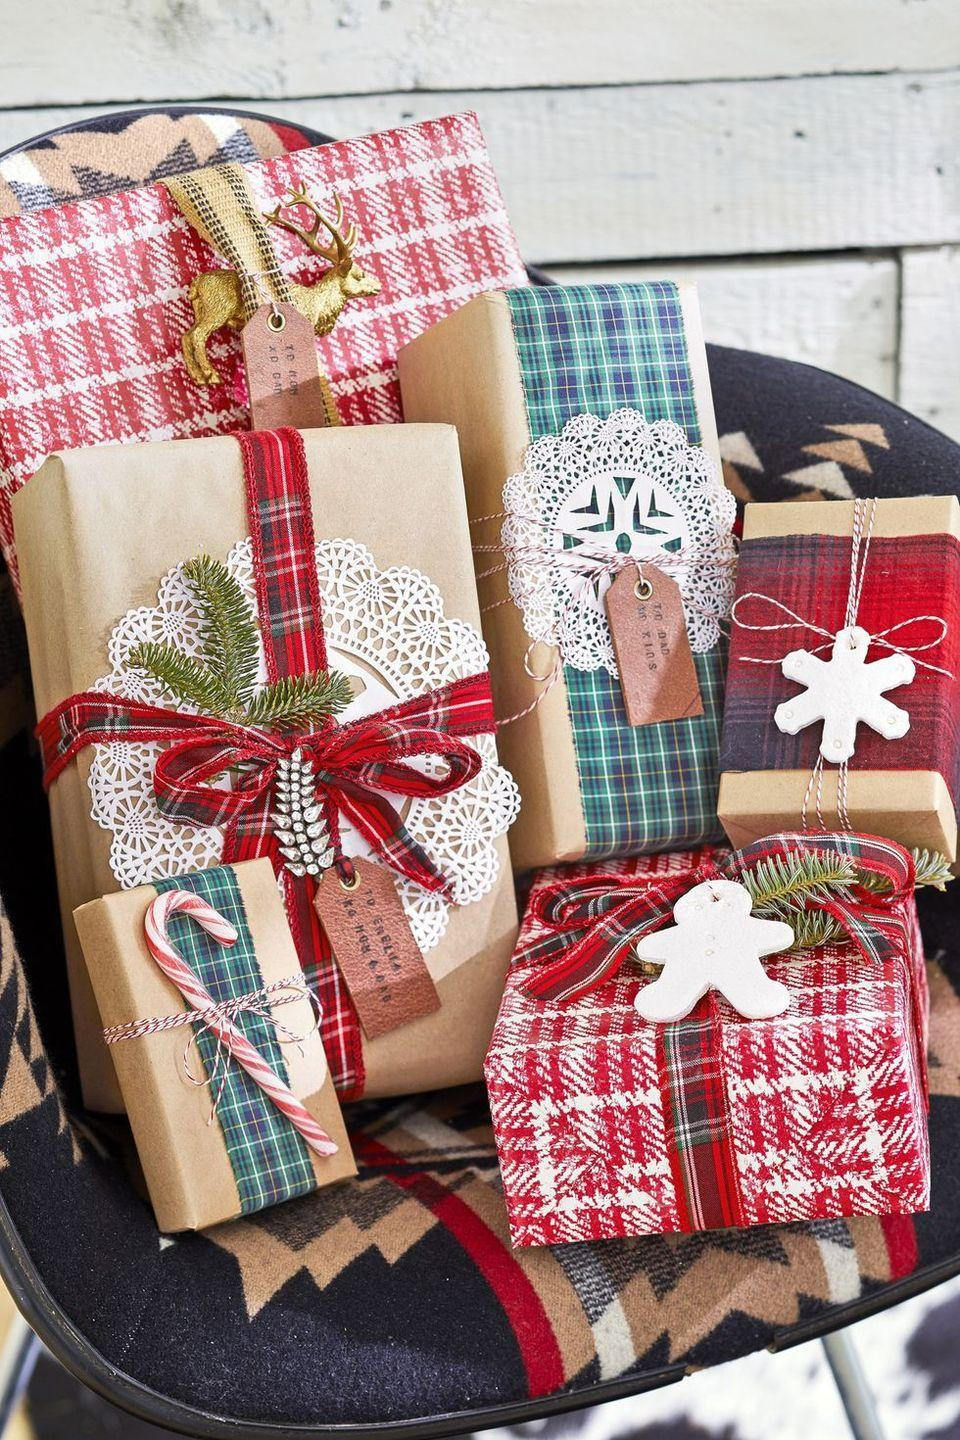 <p>To experiment with a country-inspired gift-wrapping look, cut strips out of your unwanted plaid shirts (make sure the pattern appears inside and out). Next, create a fringe effect by pulling the loose threads. You can even sew multiple pieces together to lengthen the stripes if necessary. Tie your plaid strips around your presents and spruce them up with doilies, candy canes, and ornaments.</p>